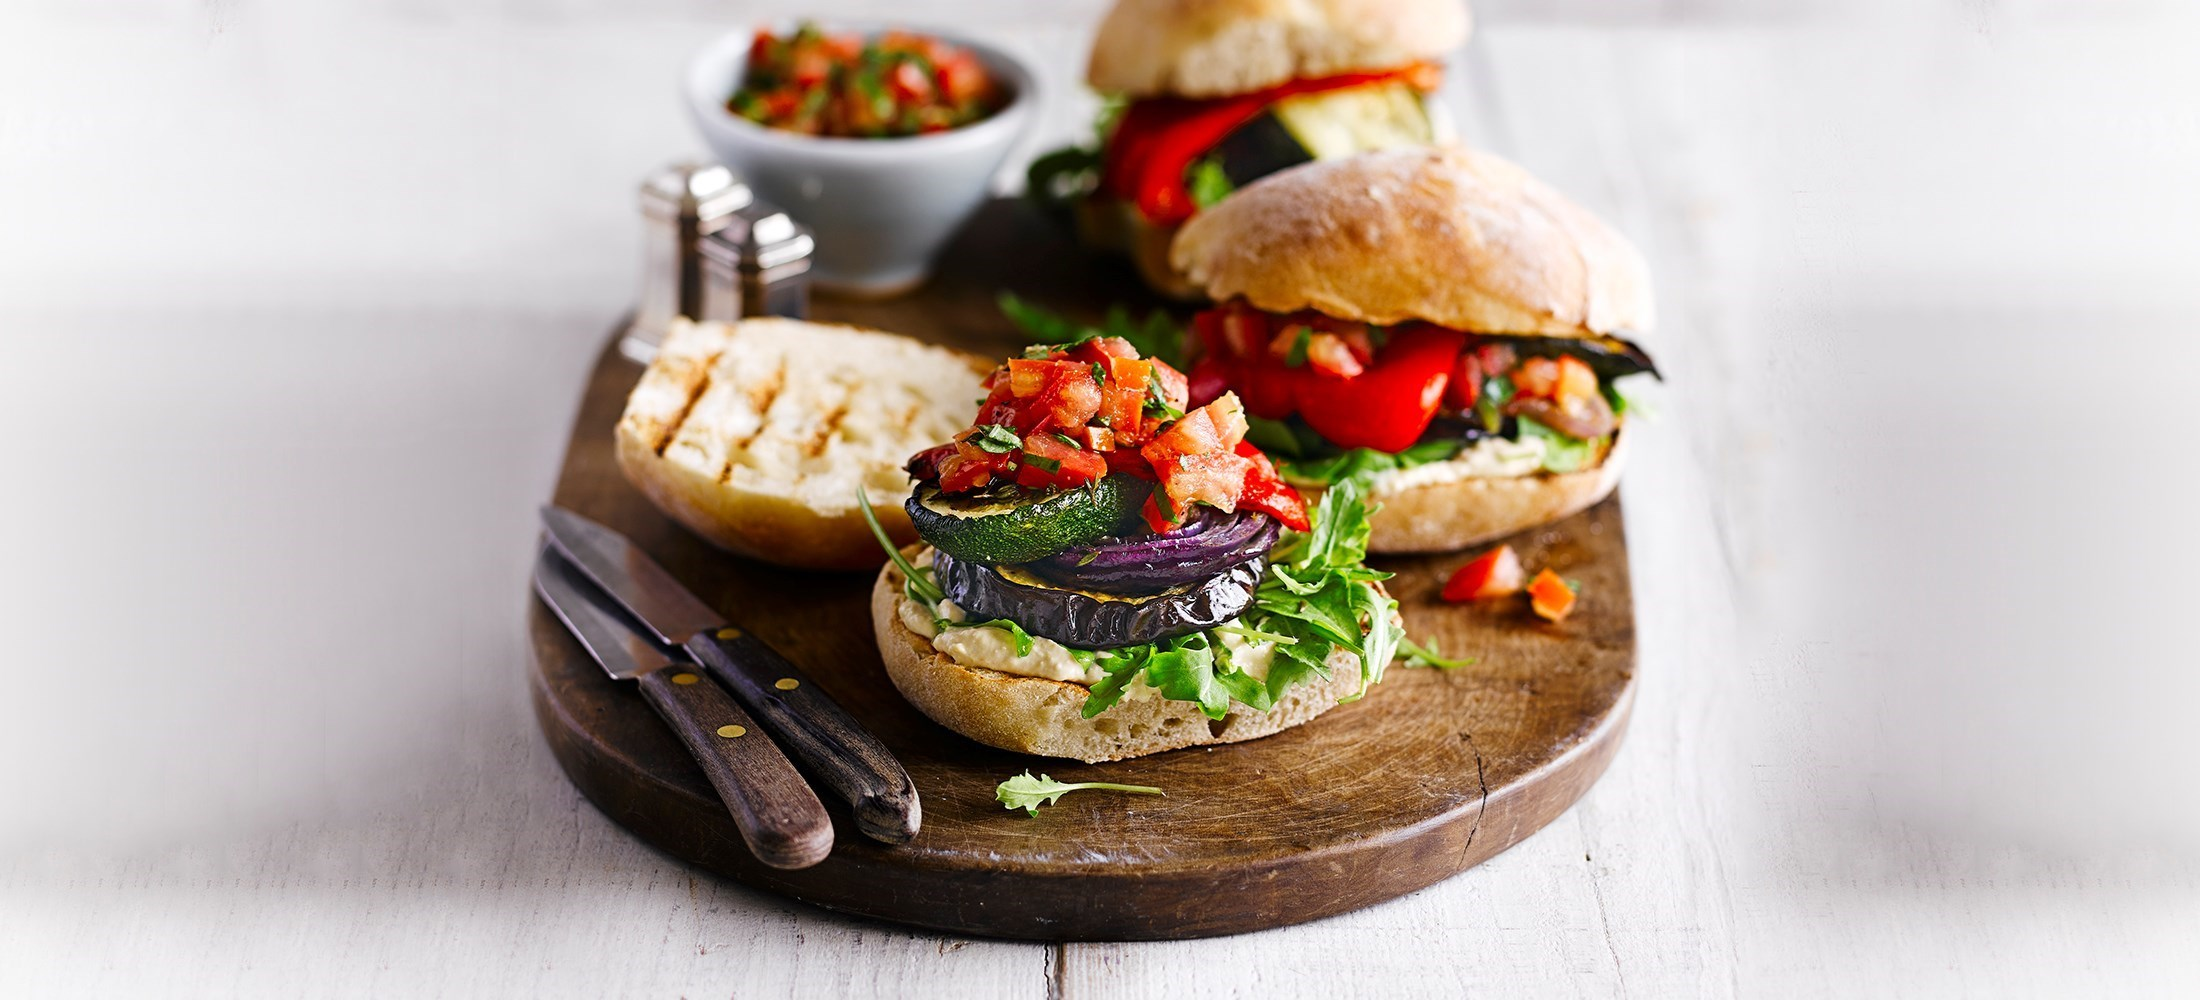 Quick vegetarian recipes ready in 30 minutes east vegetarian quick vegetarian recipes ready in under 30 minutes allotment burgers forumfinder Image collections